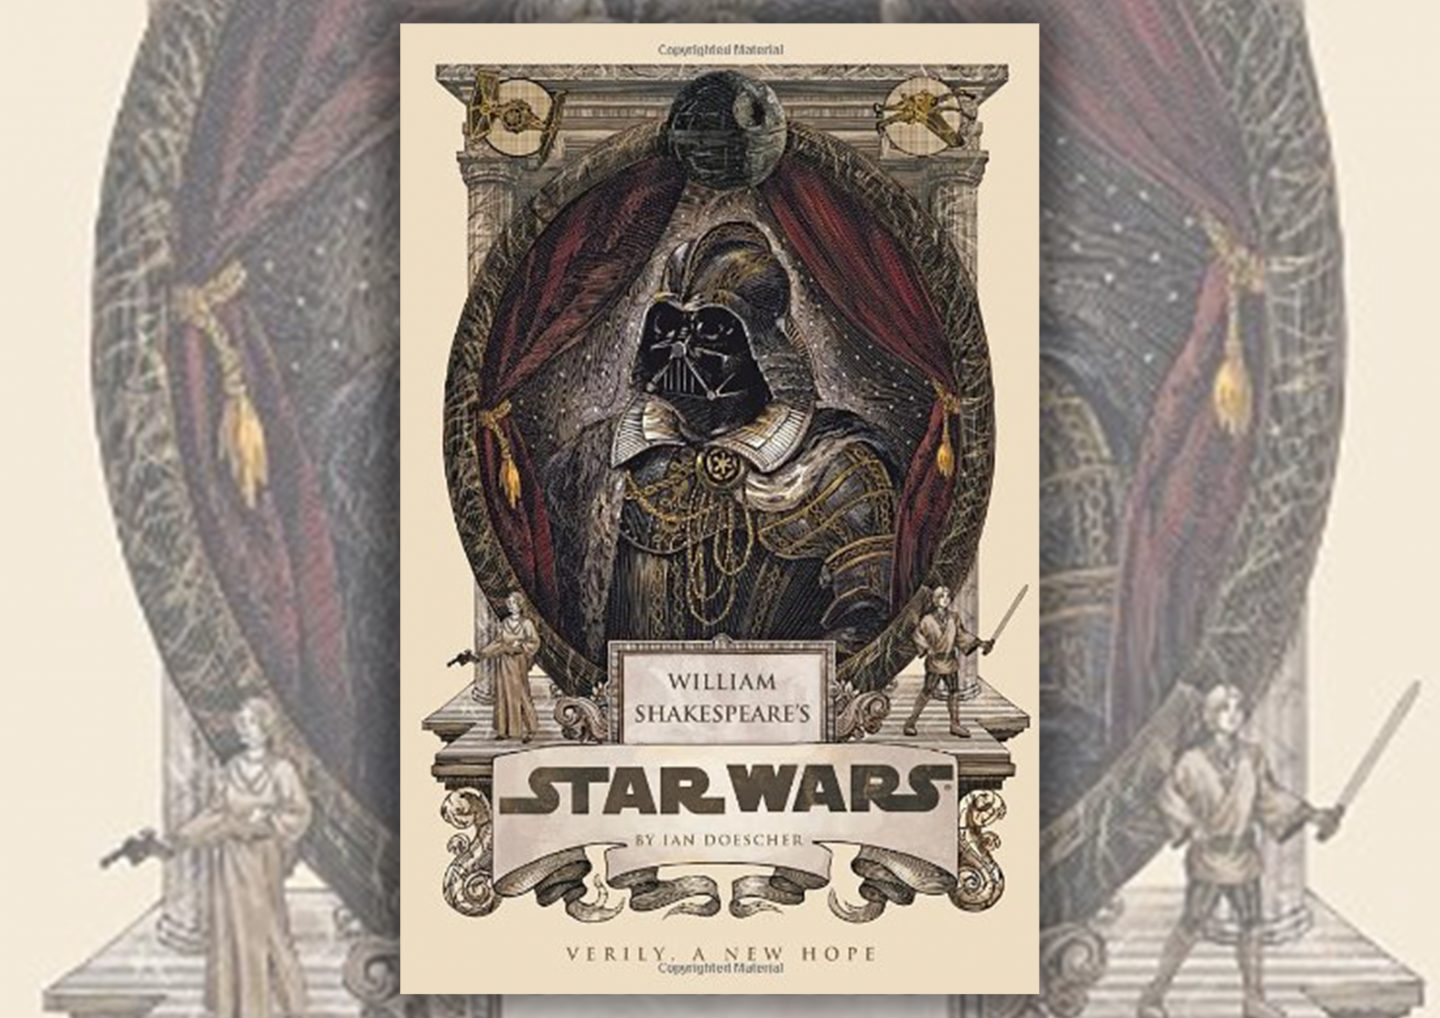 Review: William Shakespeare's Star Wars #4 by Ian Doescher